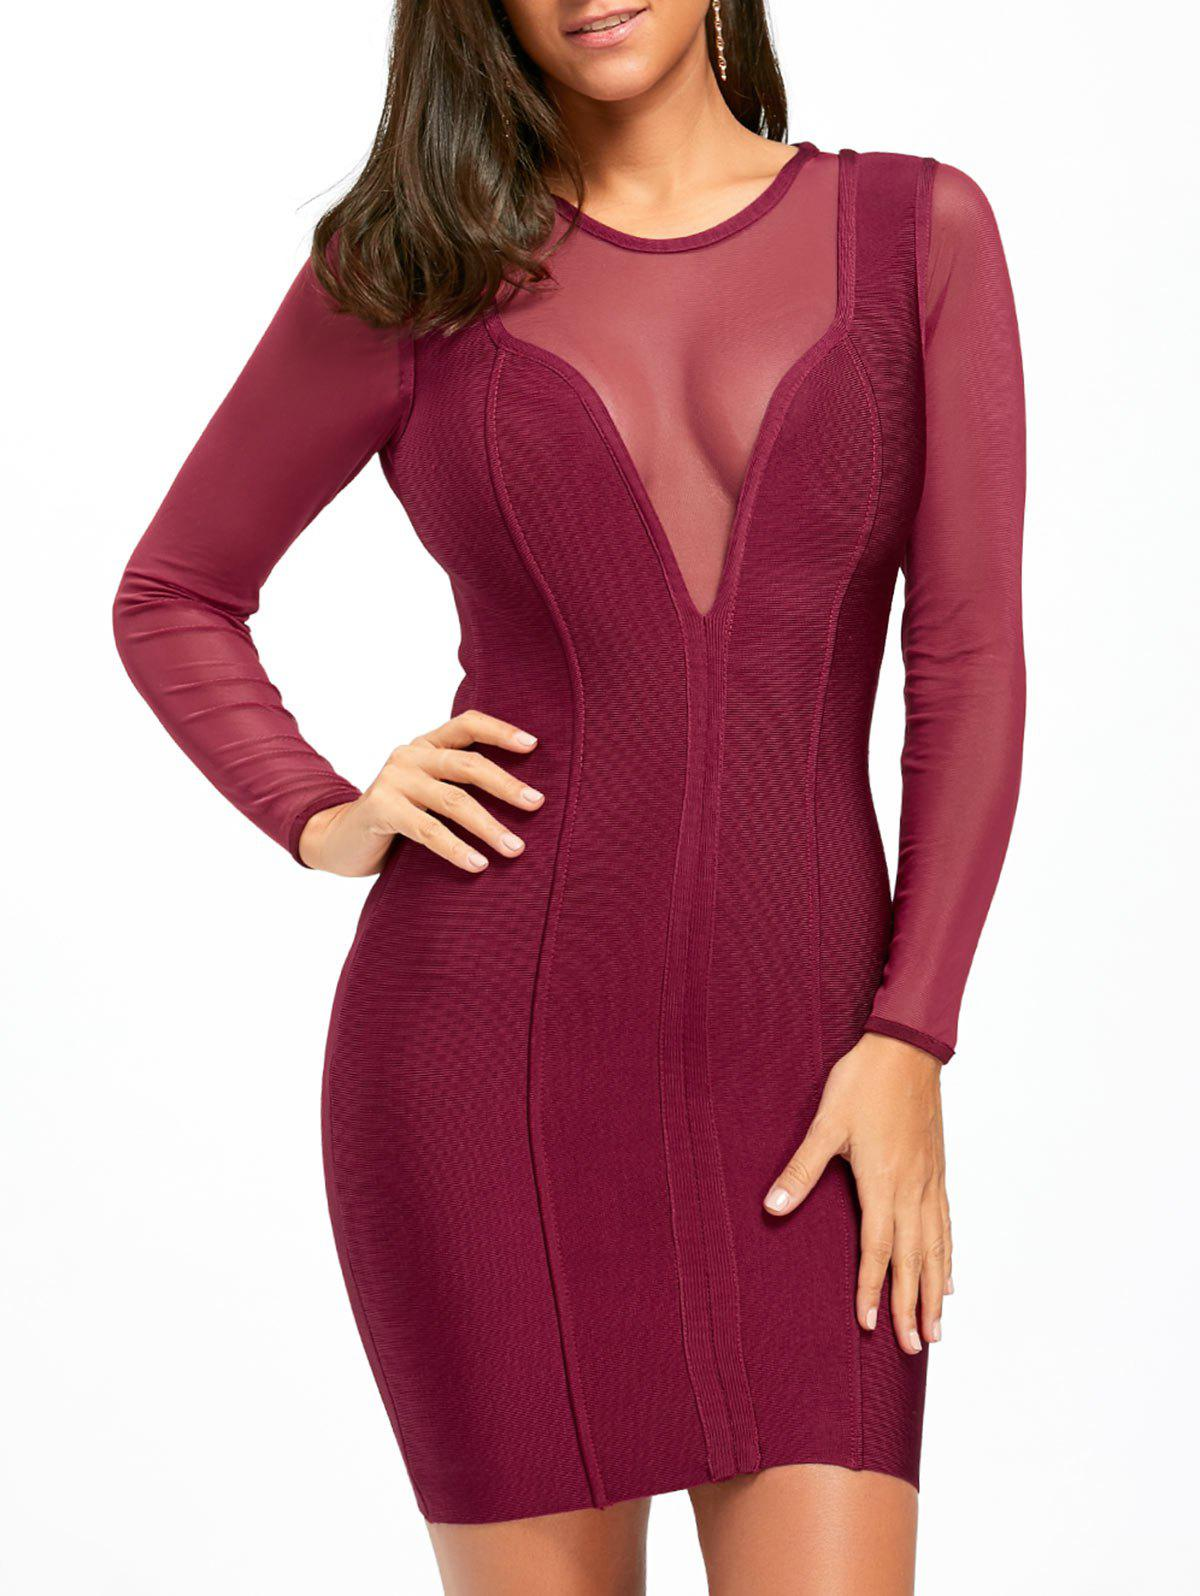 Mesh Insert Sheer Long Sleeve Bandage Dress - PURPLISH RED M